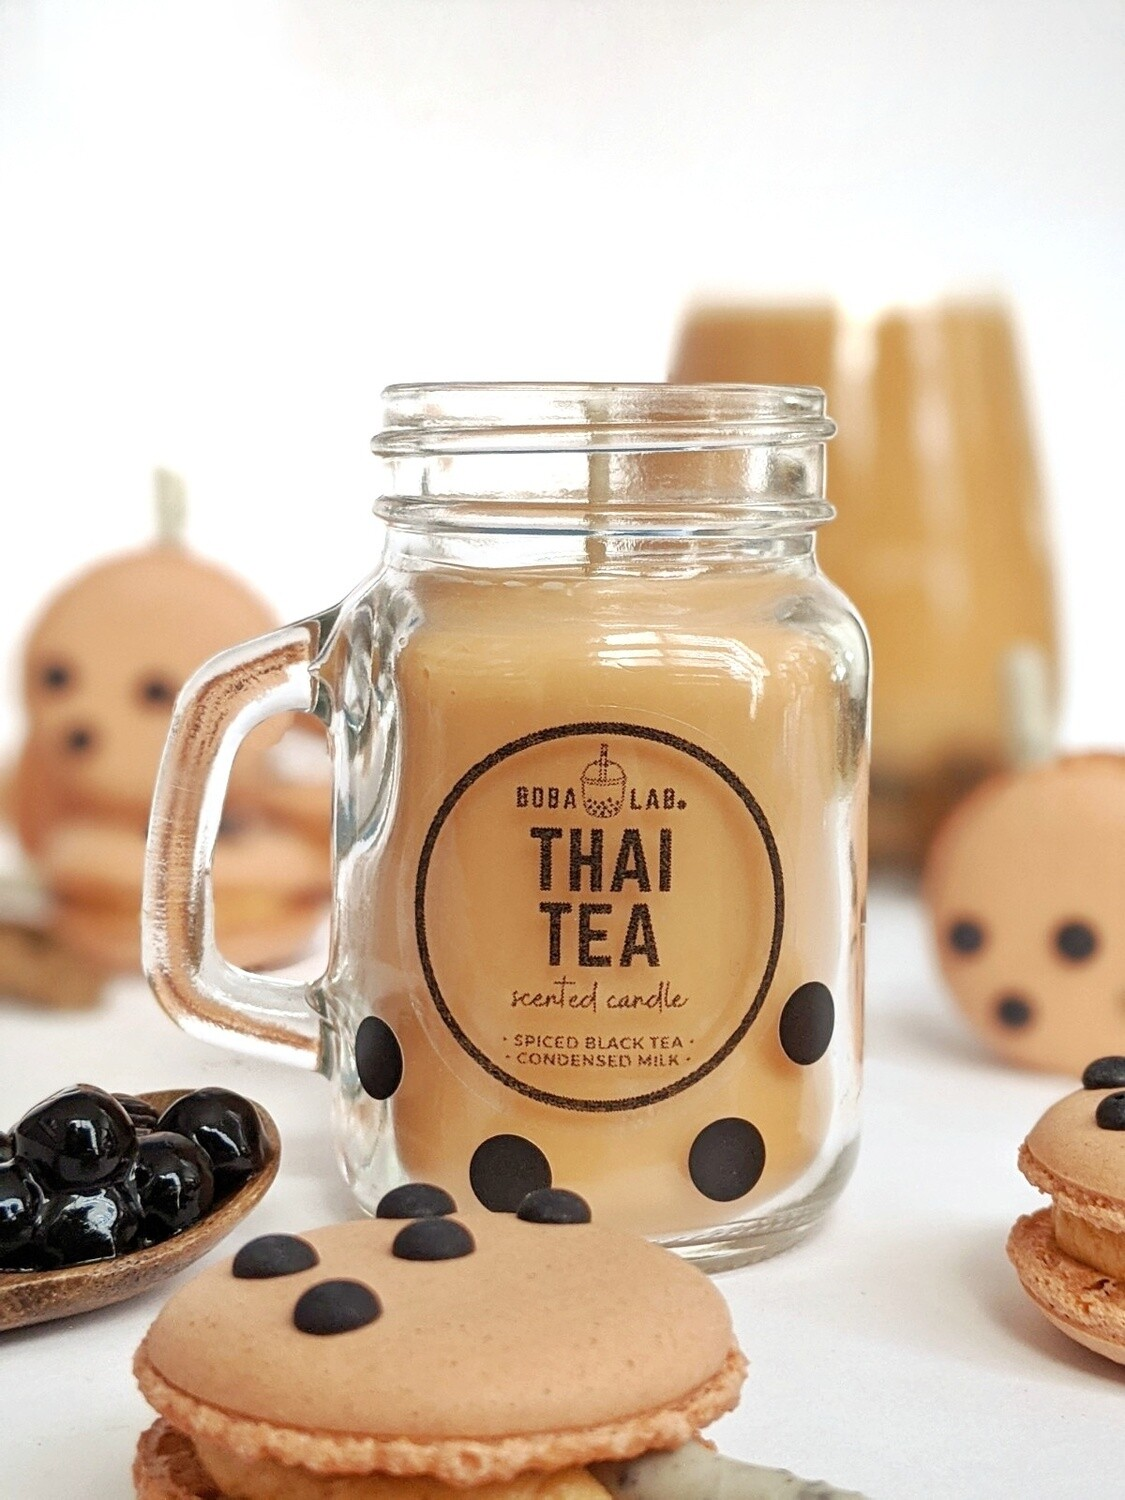 Thai Tea Boba Lab Candle